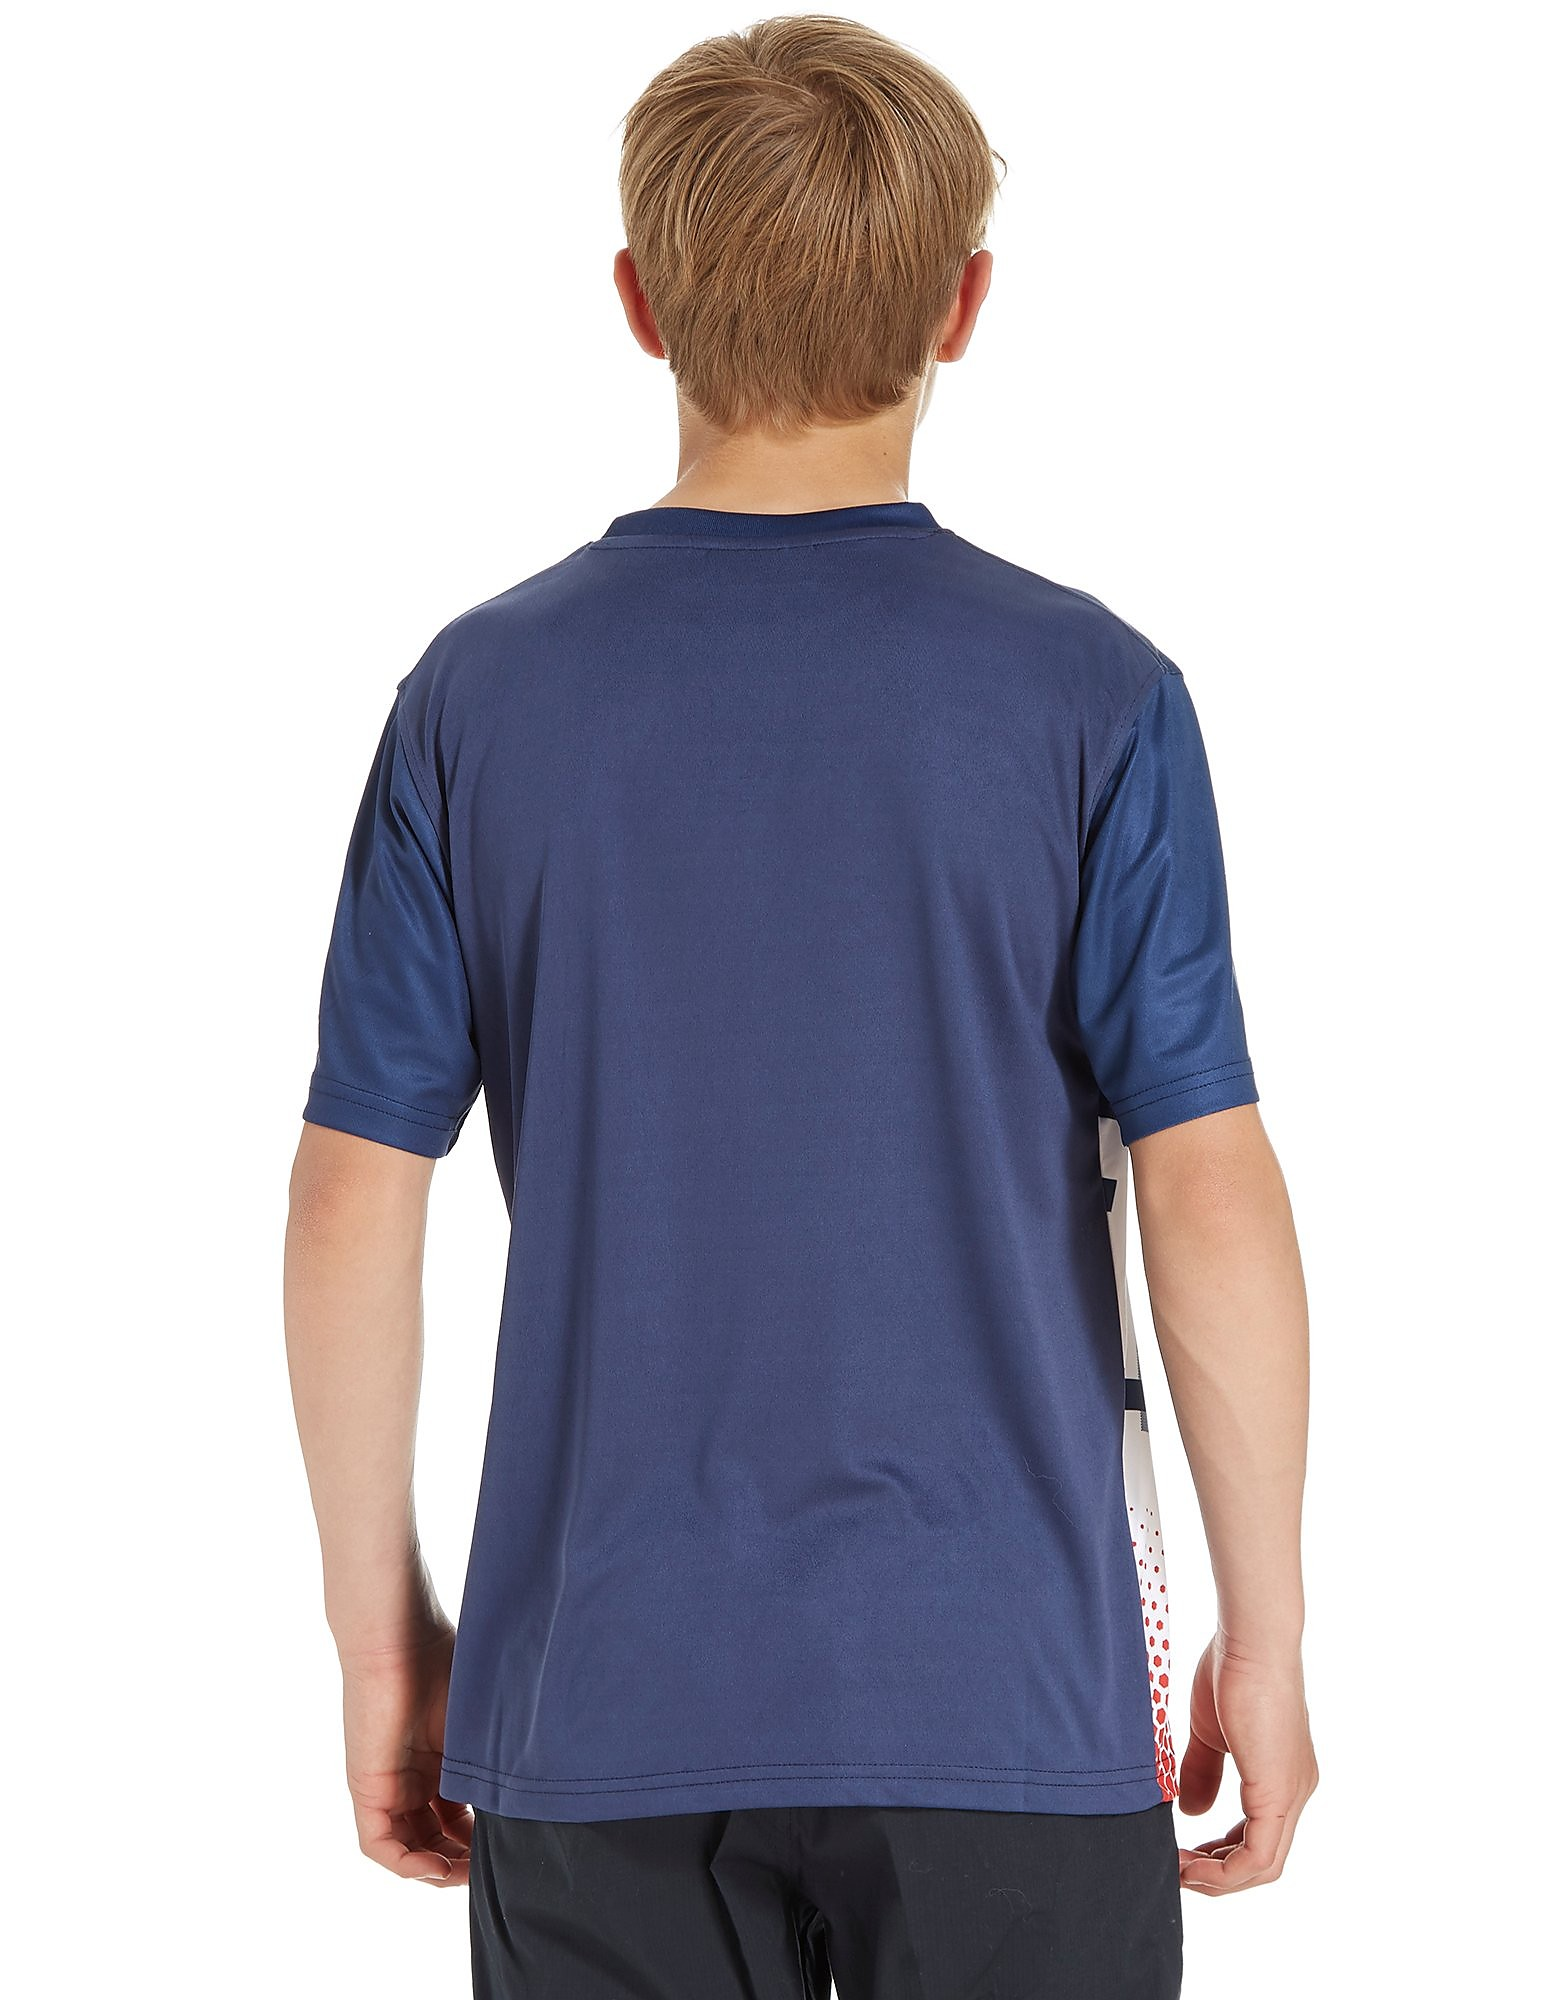 McKenzie Fisher Poly T-Shirt Junior